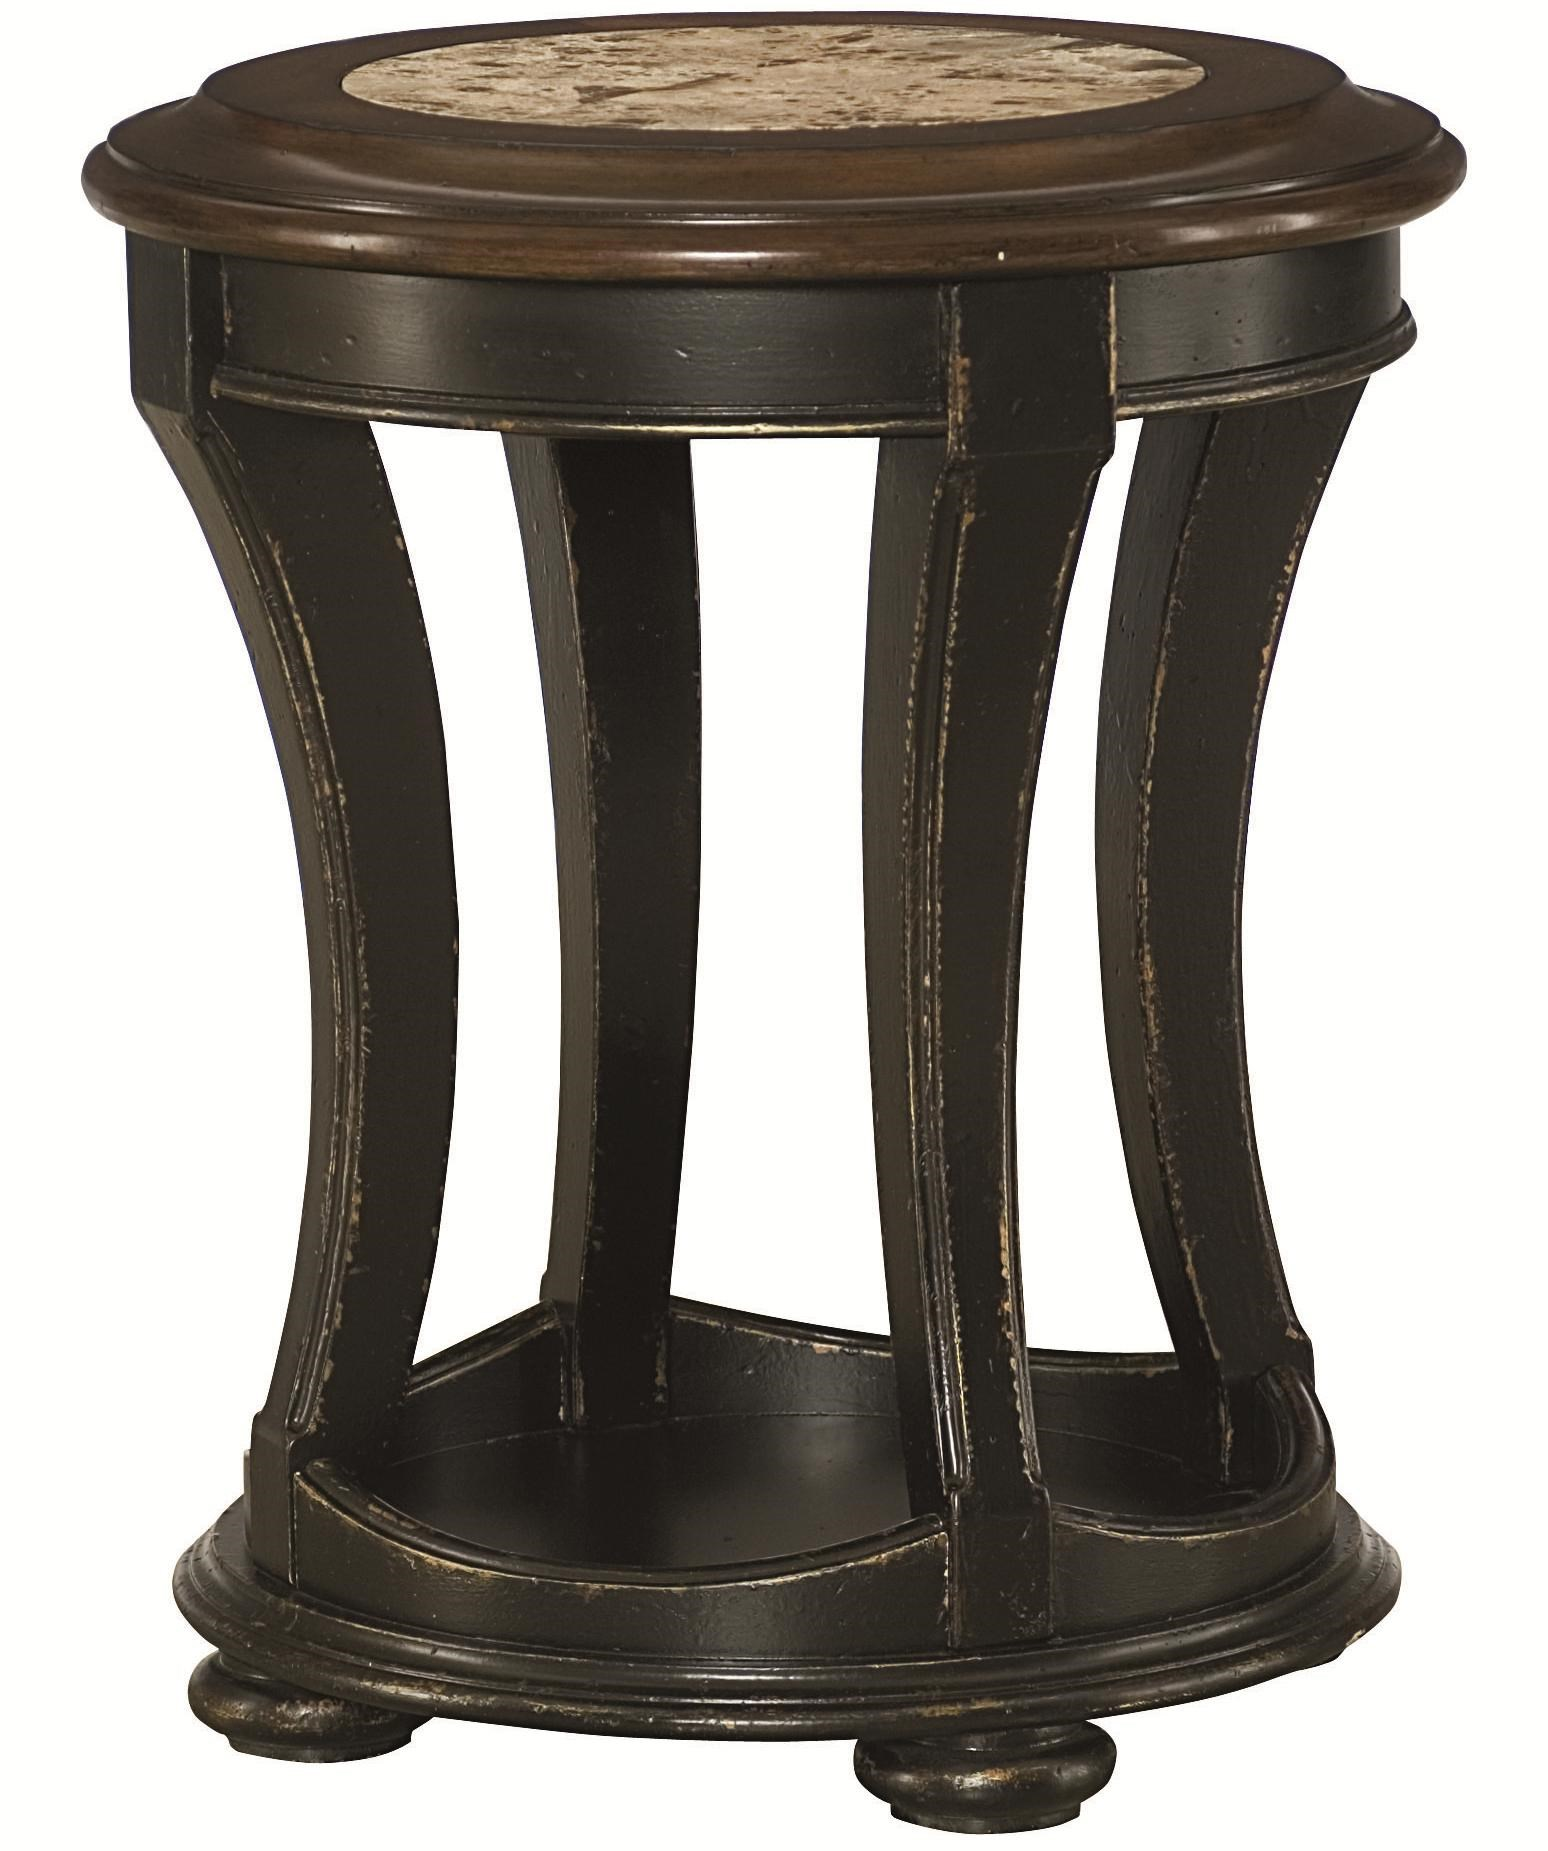 Hammary Dorset Round End Table With Top Stone Inlay